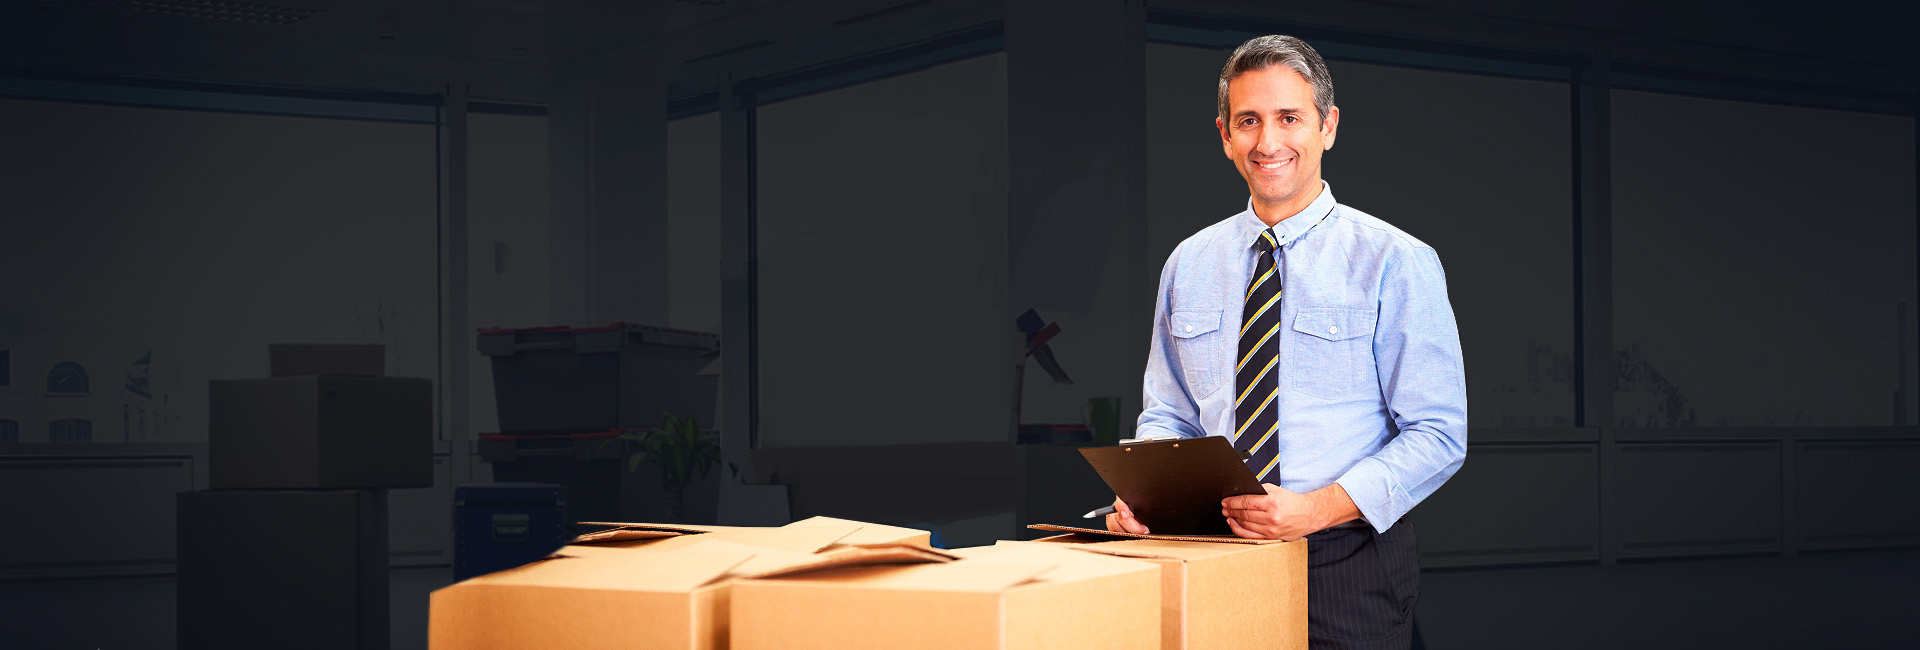 WE PROVIDE BEST MOVING